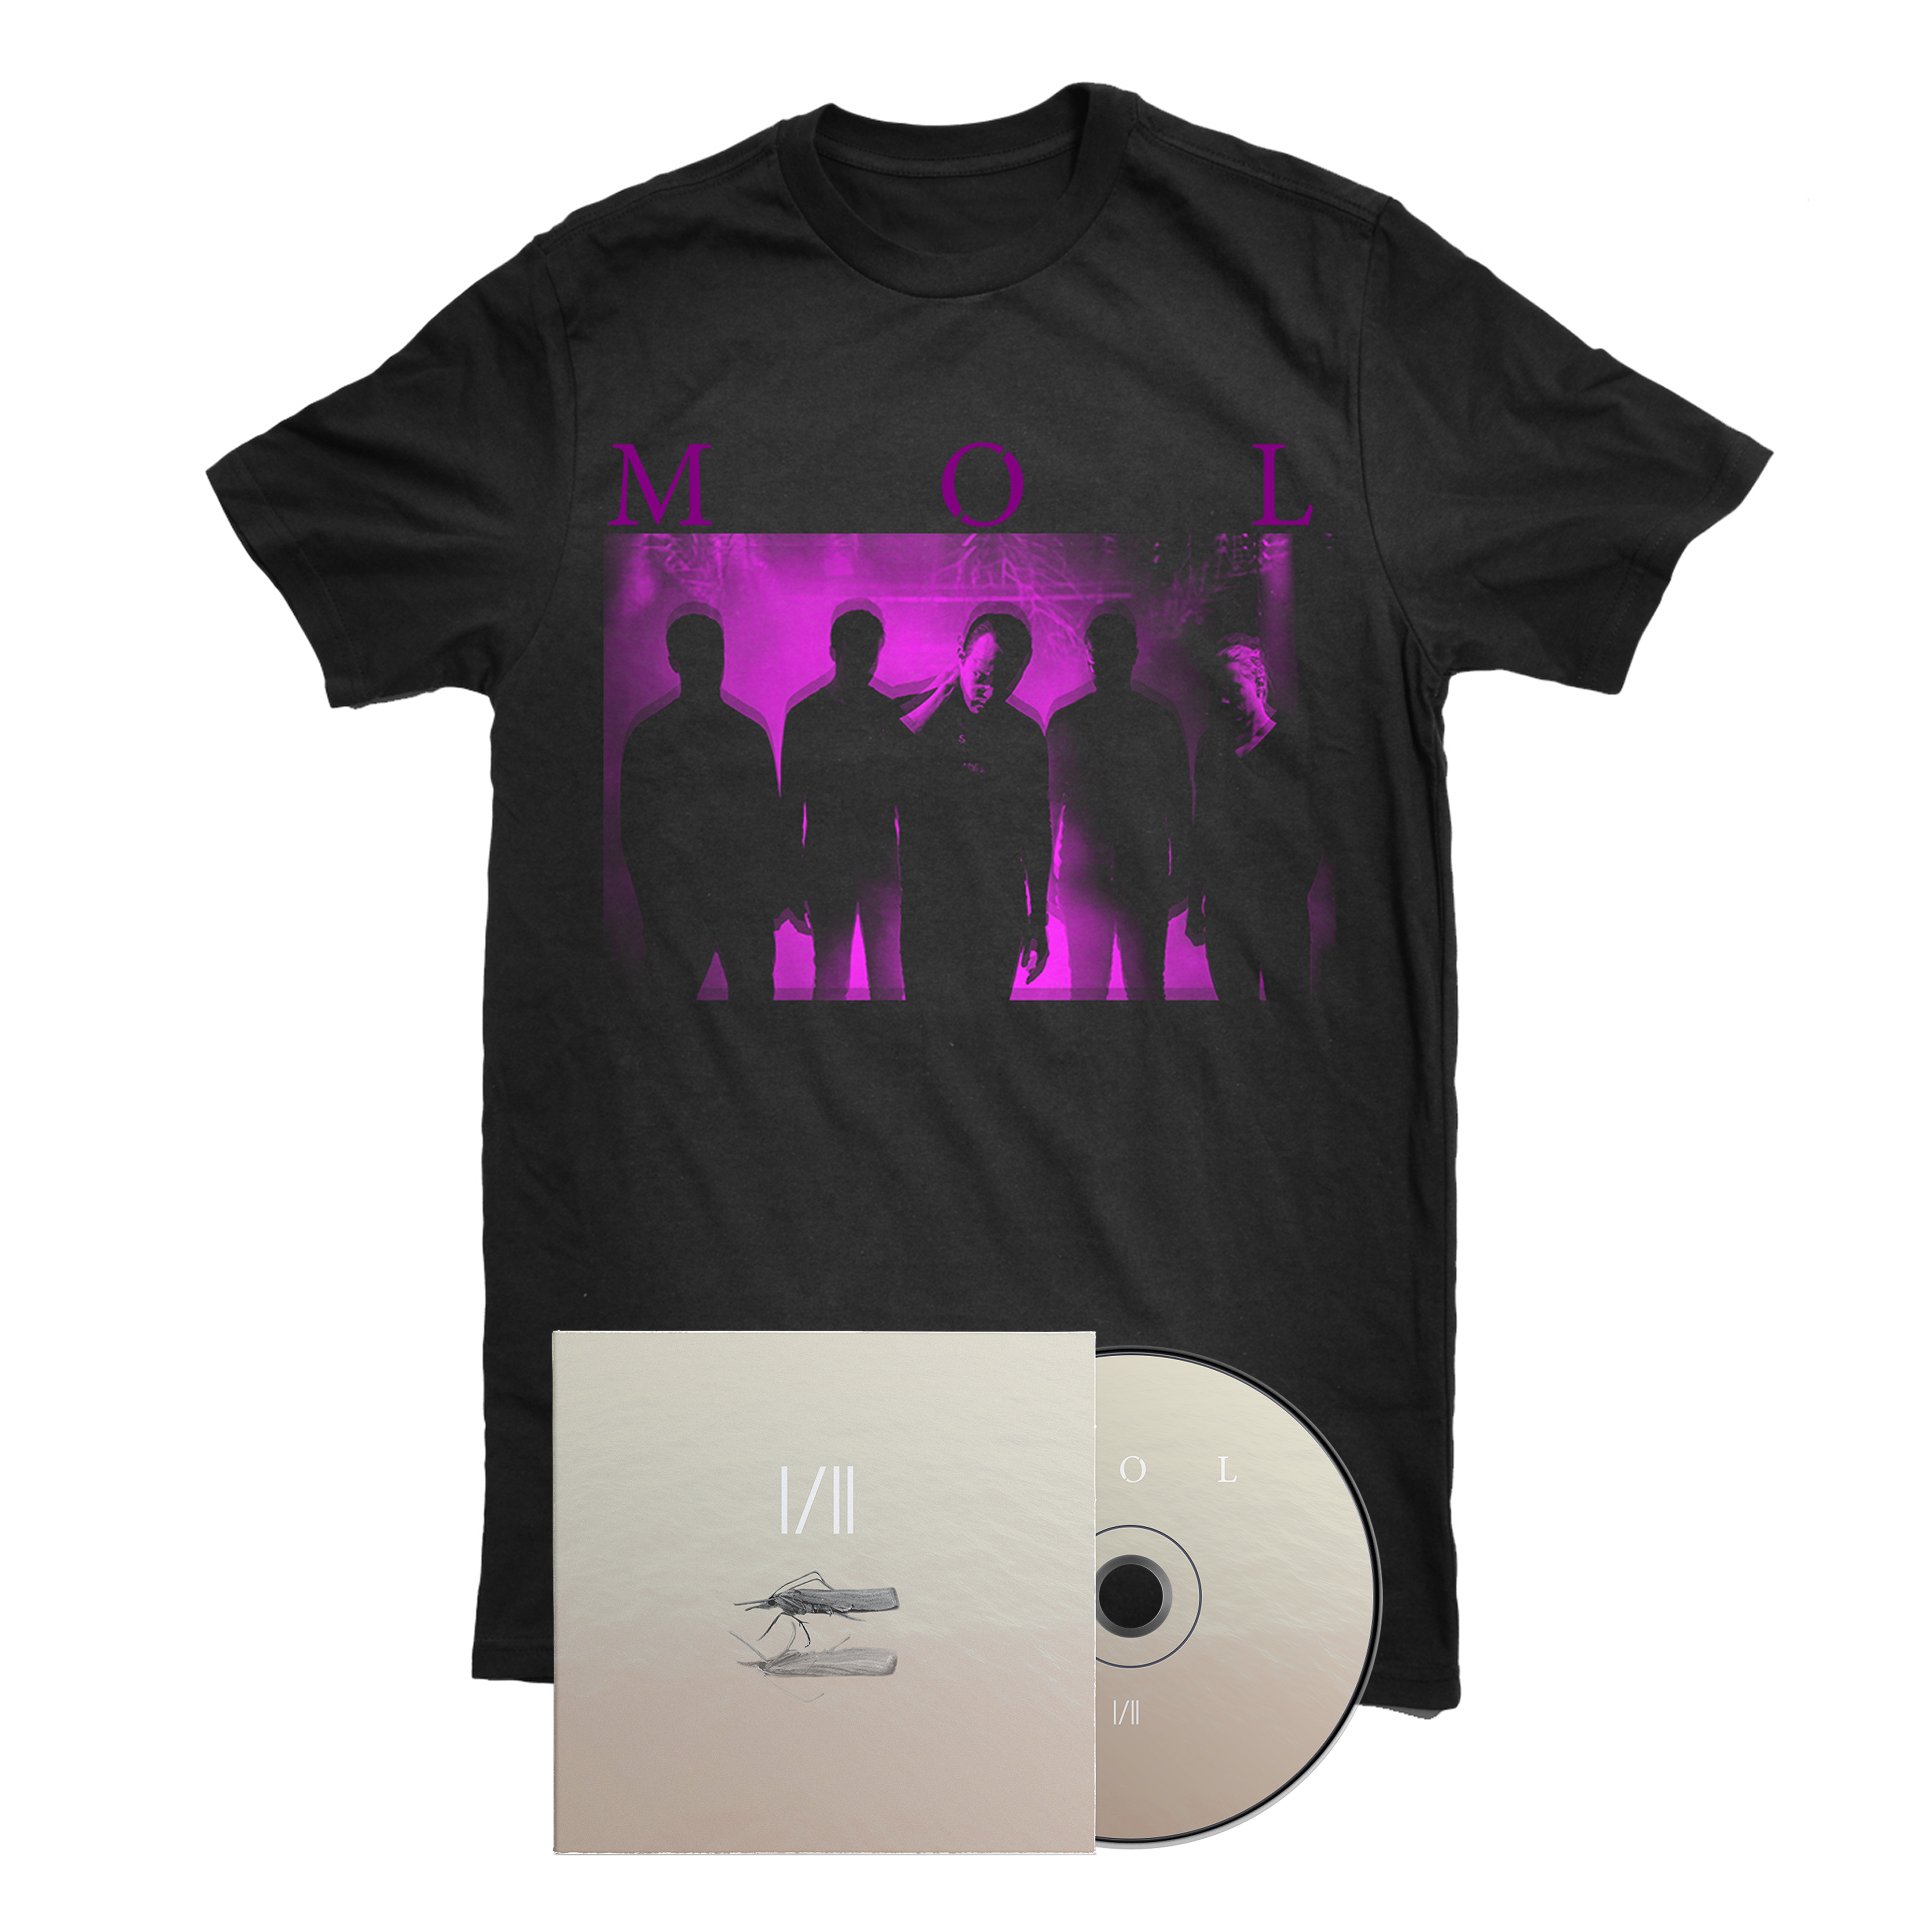 MØL - I/II shirt + CD